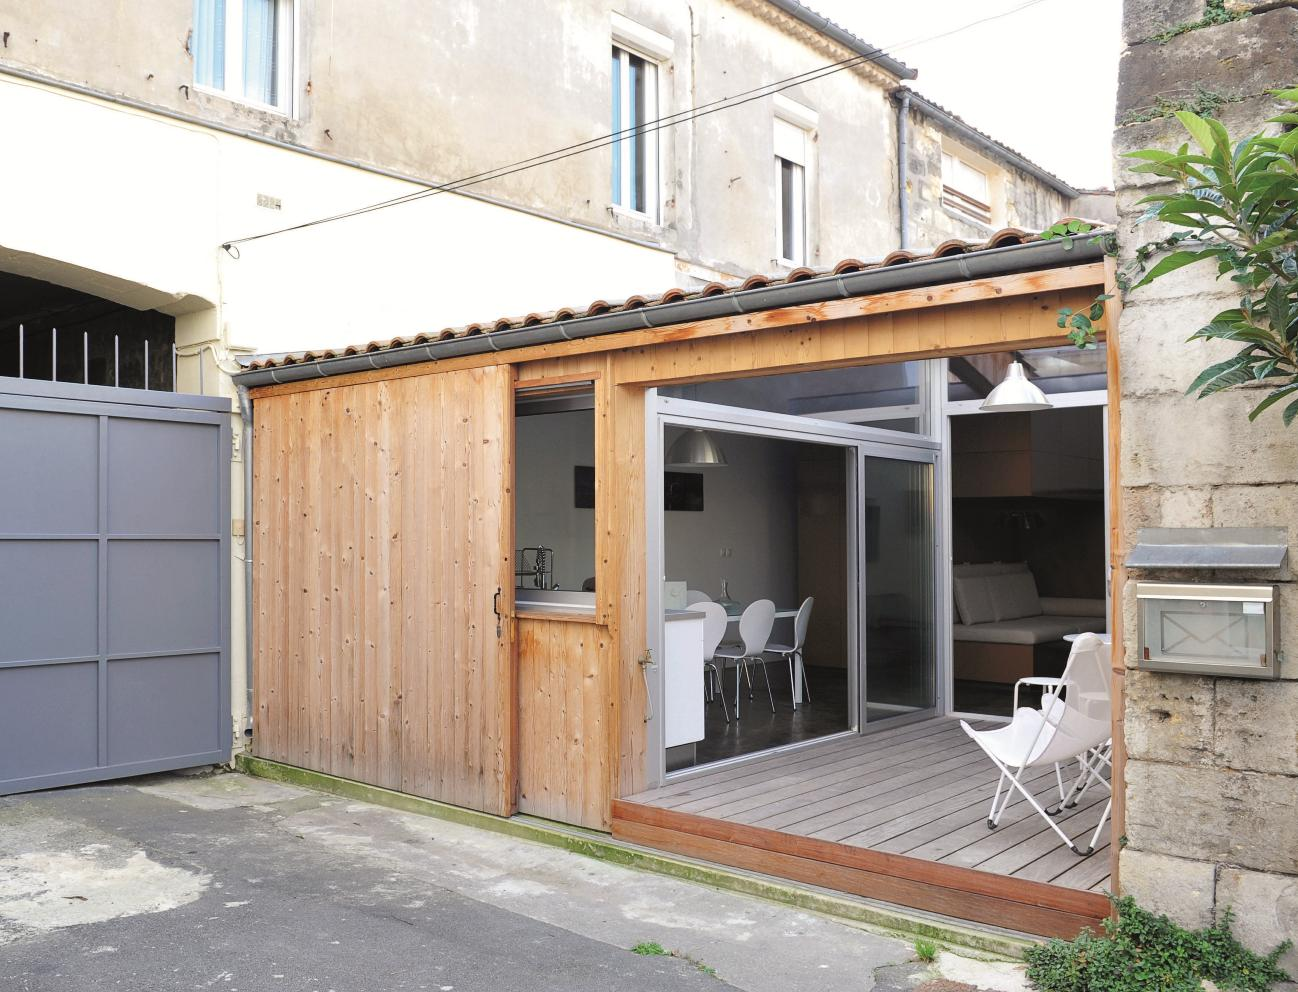 Slideshow dreaming big and building small - Small spaces george clarke pict ...